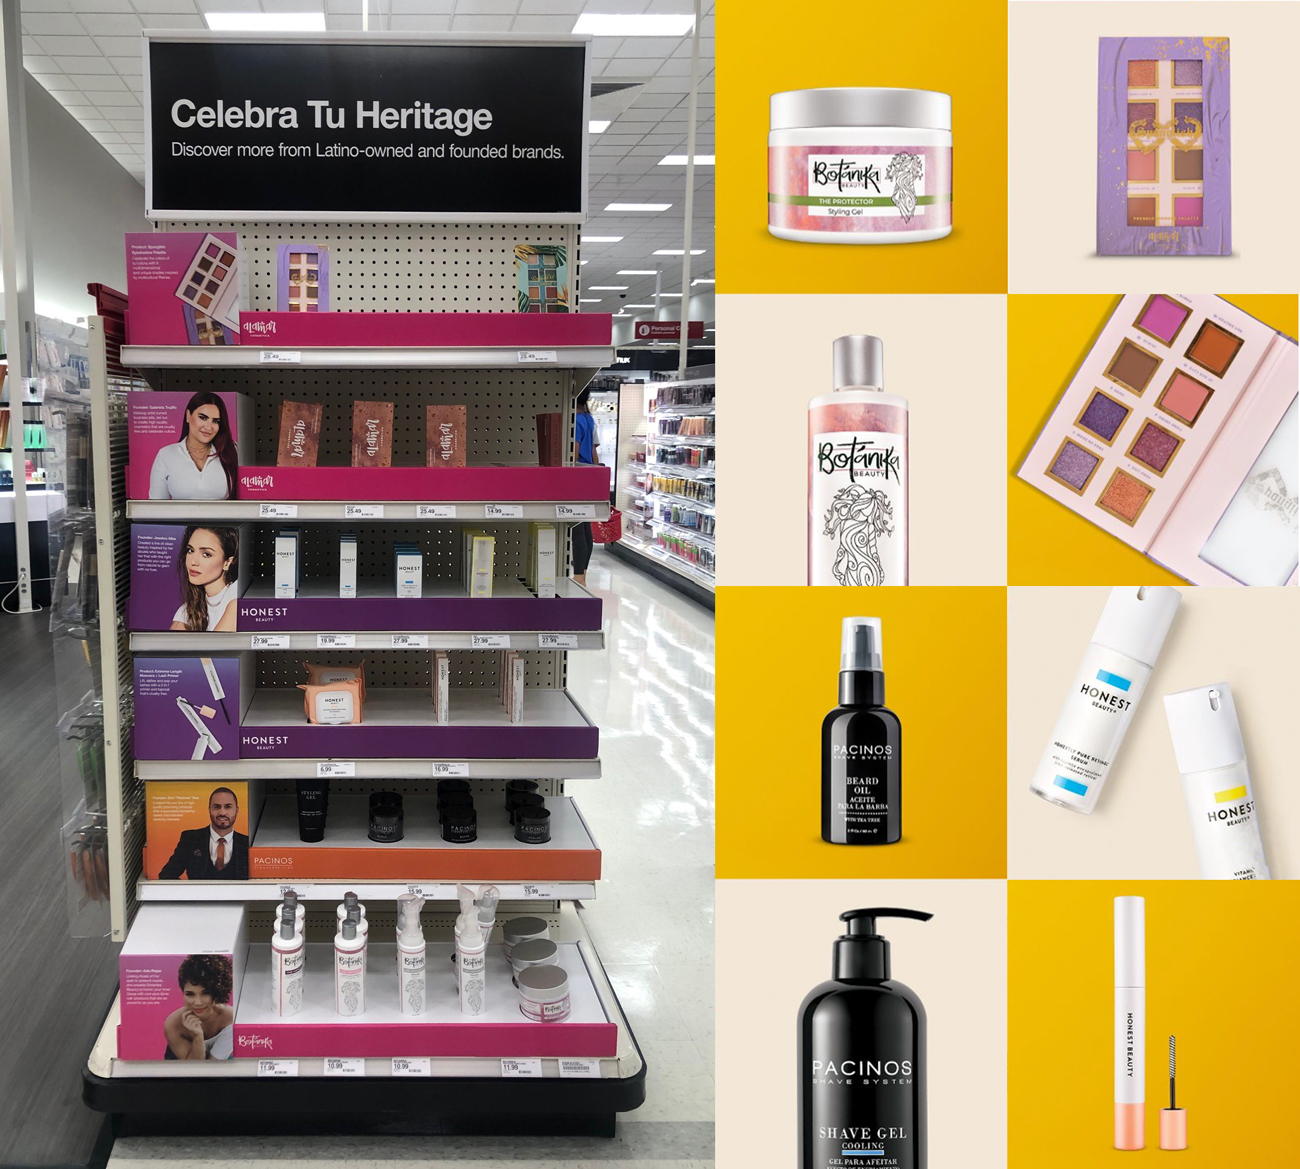 A Target store shelf holds products from Latino-owned businesses and next to it a product collage shows a close-up of packaging for Botanika Beauty and Honest Beauty, eyeshadows from Alamar Cosmetics and product bottles from Pacinos.